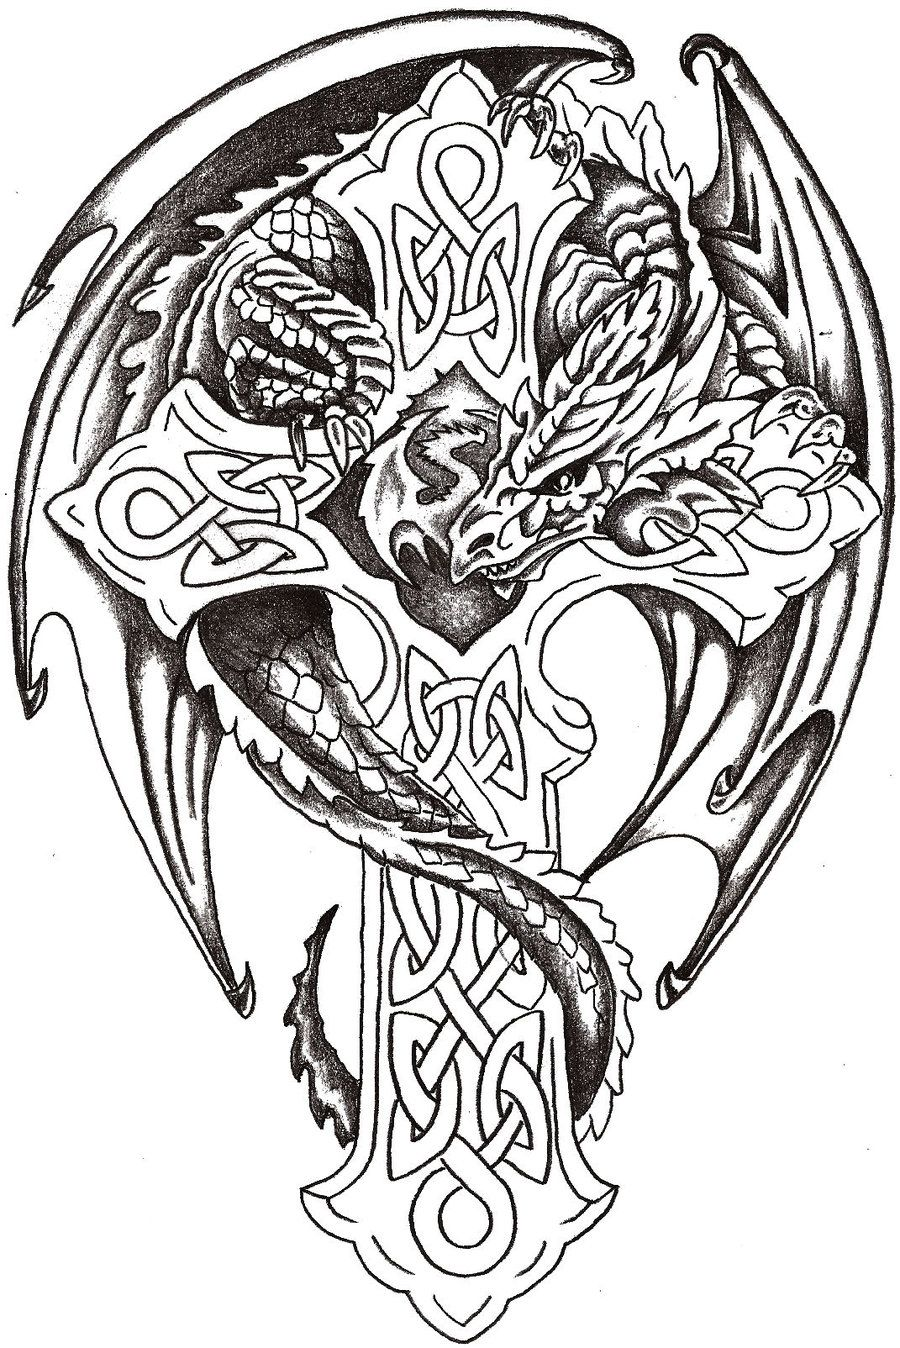 Coloring pages for adults crosses - Dragon Cross Tattoo